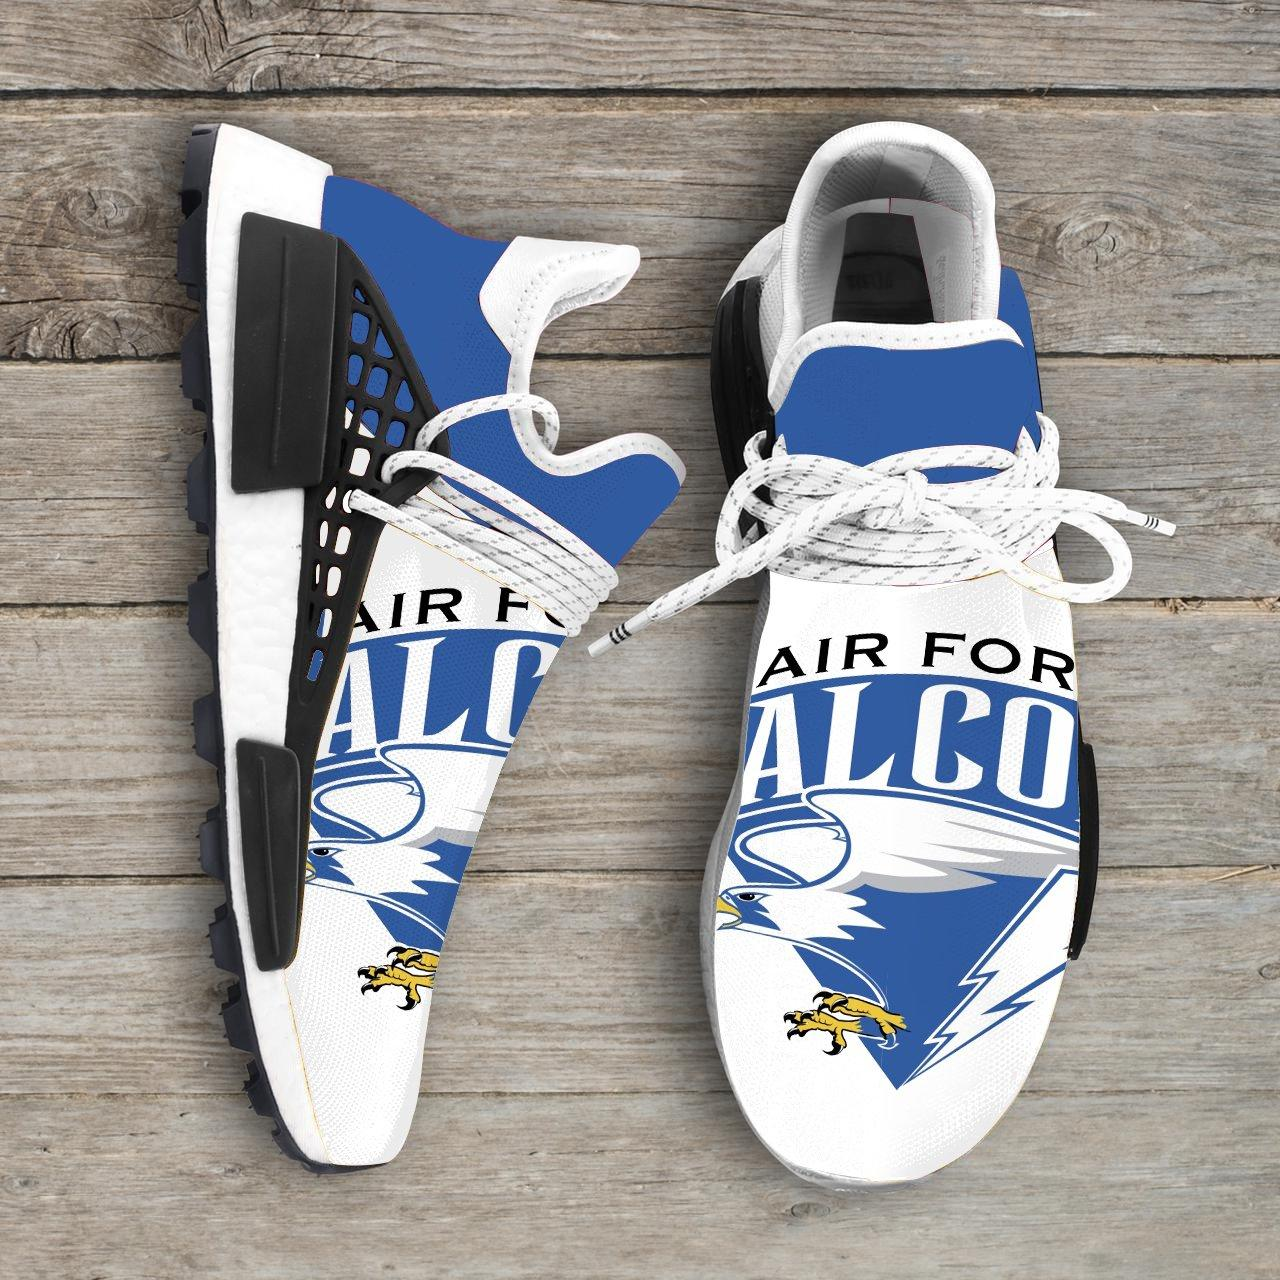 Air Force Falcons NCAA NMD Human Race Sneakers Sport Shoes Shoes2020